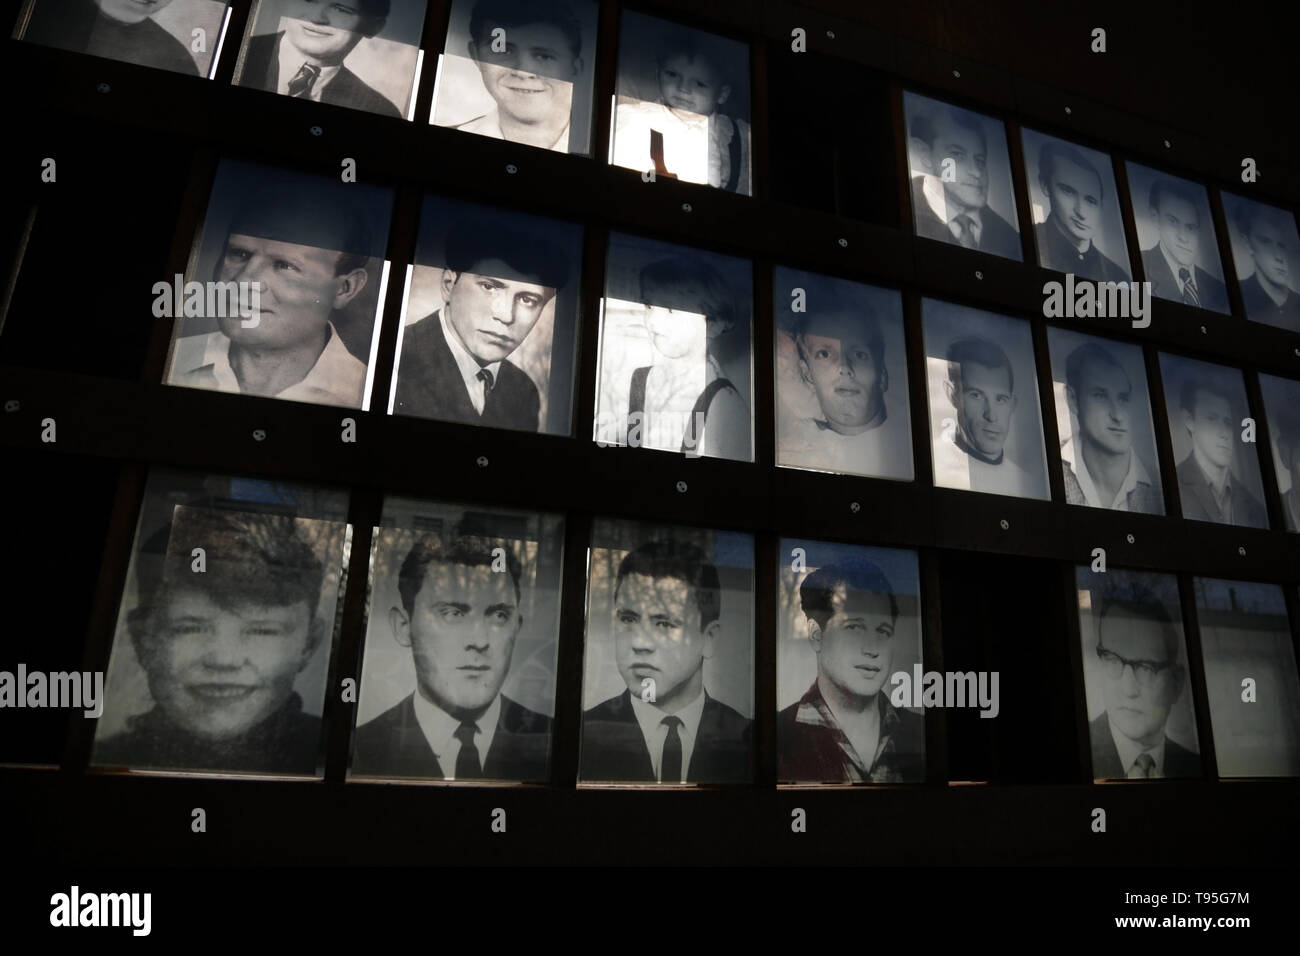 Photographs of people killed while attempting to cross the Berlin Wall, at the Berlin Wall Memorial, Bernauer Strasse, Berlin, Germany. - Stock Image